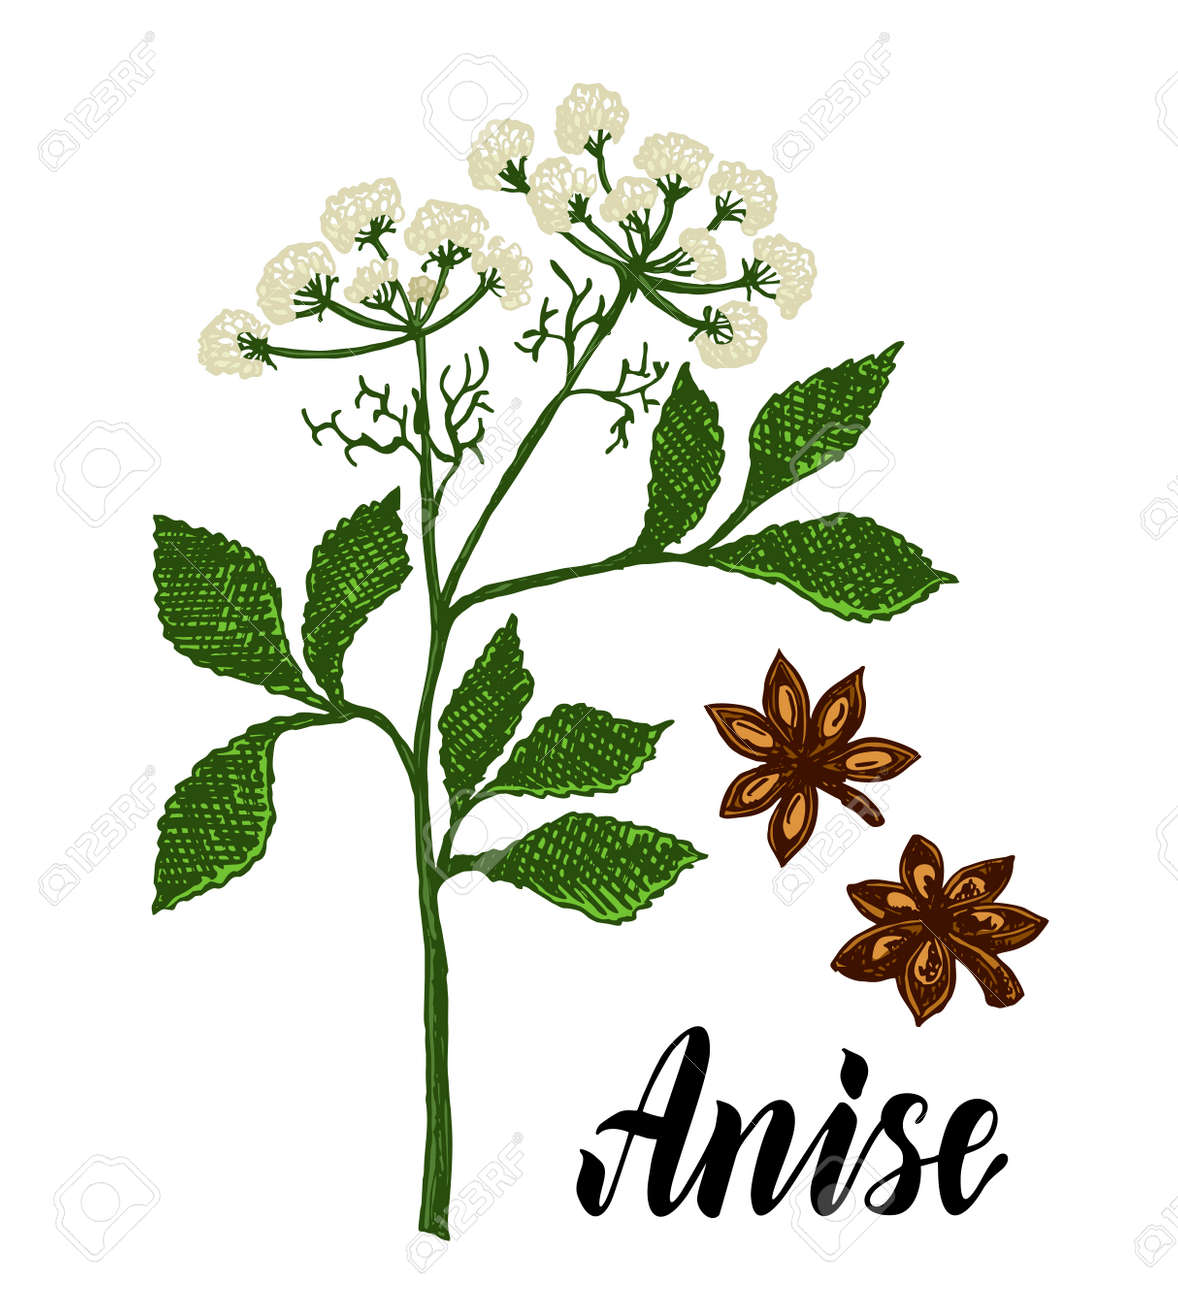 Anise herbal illustration. Botanical sketch style. Anise branch, anise leaves and seeds. Isolated medical flower and leaves. For packaging tea, condiment, oil. Botanical plant vector illustration. - 169743681